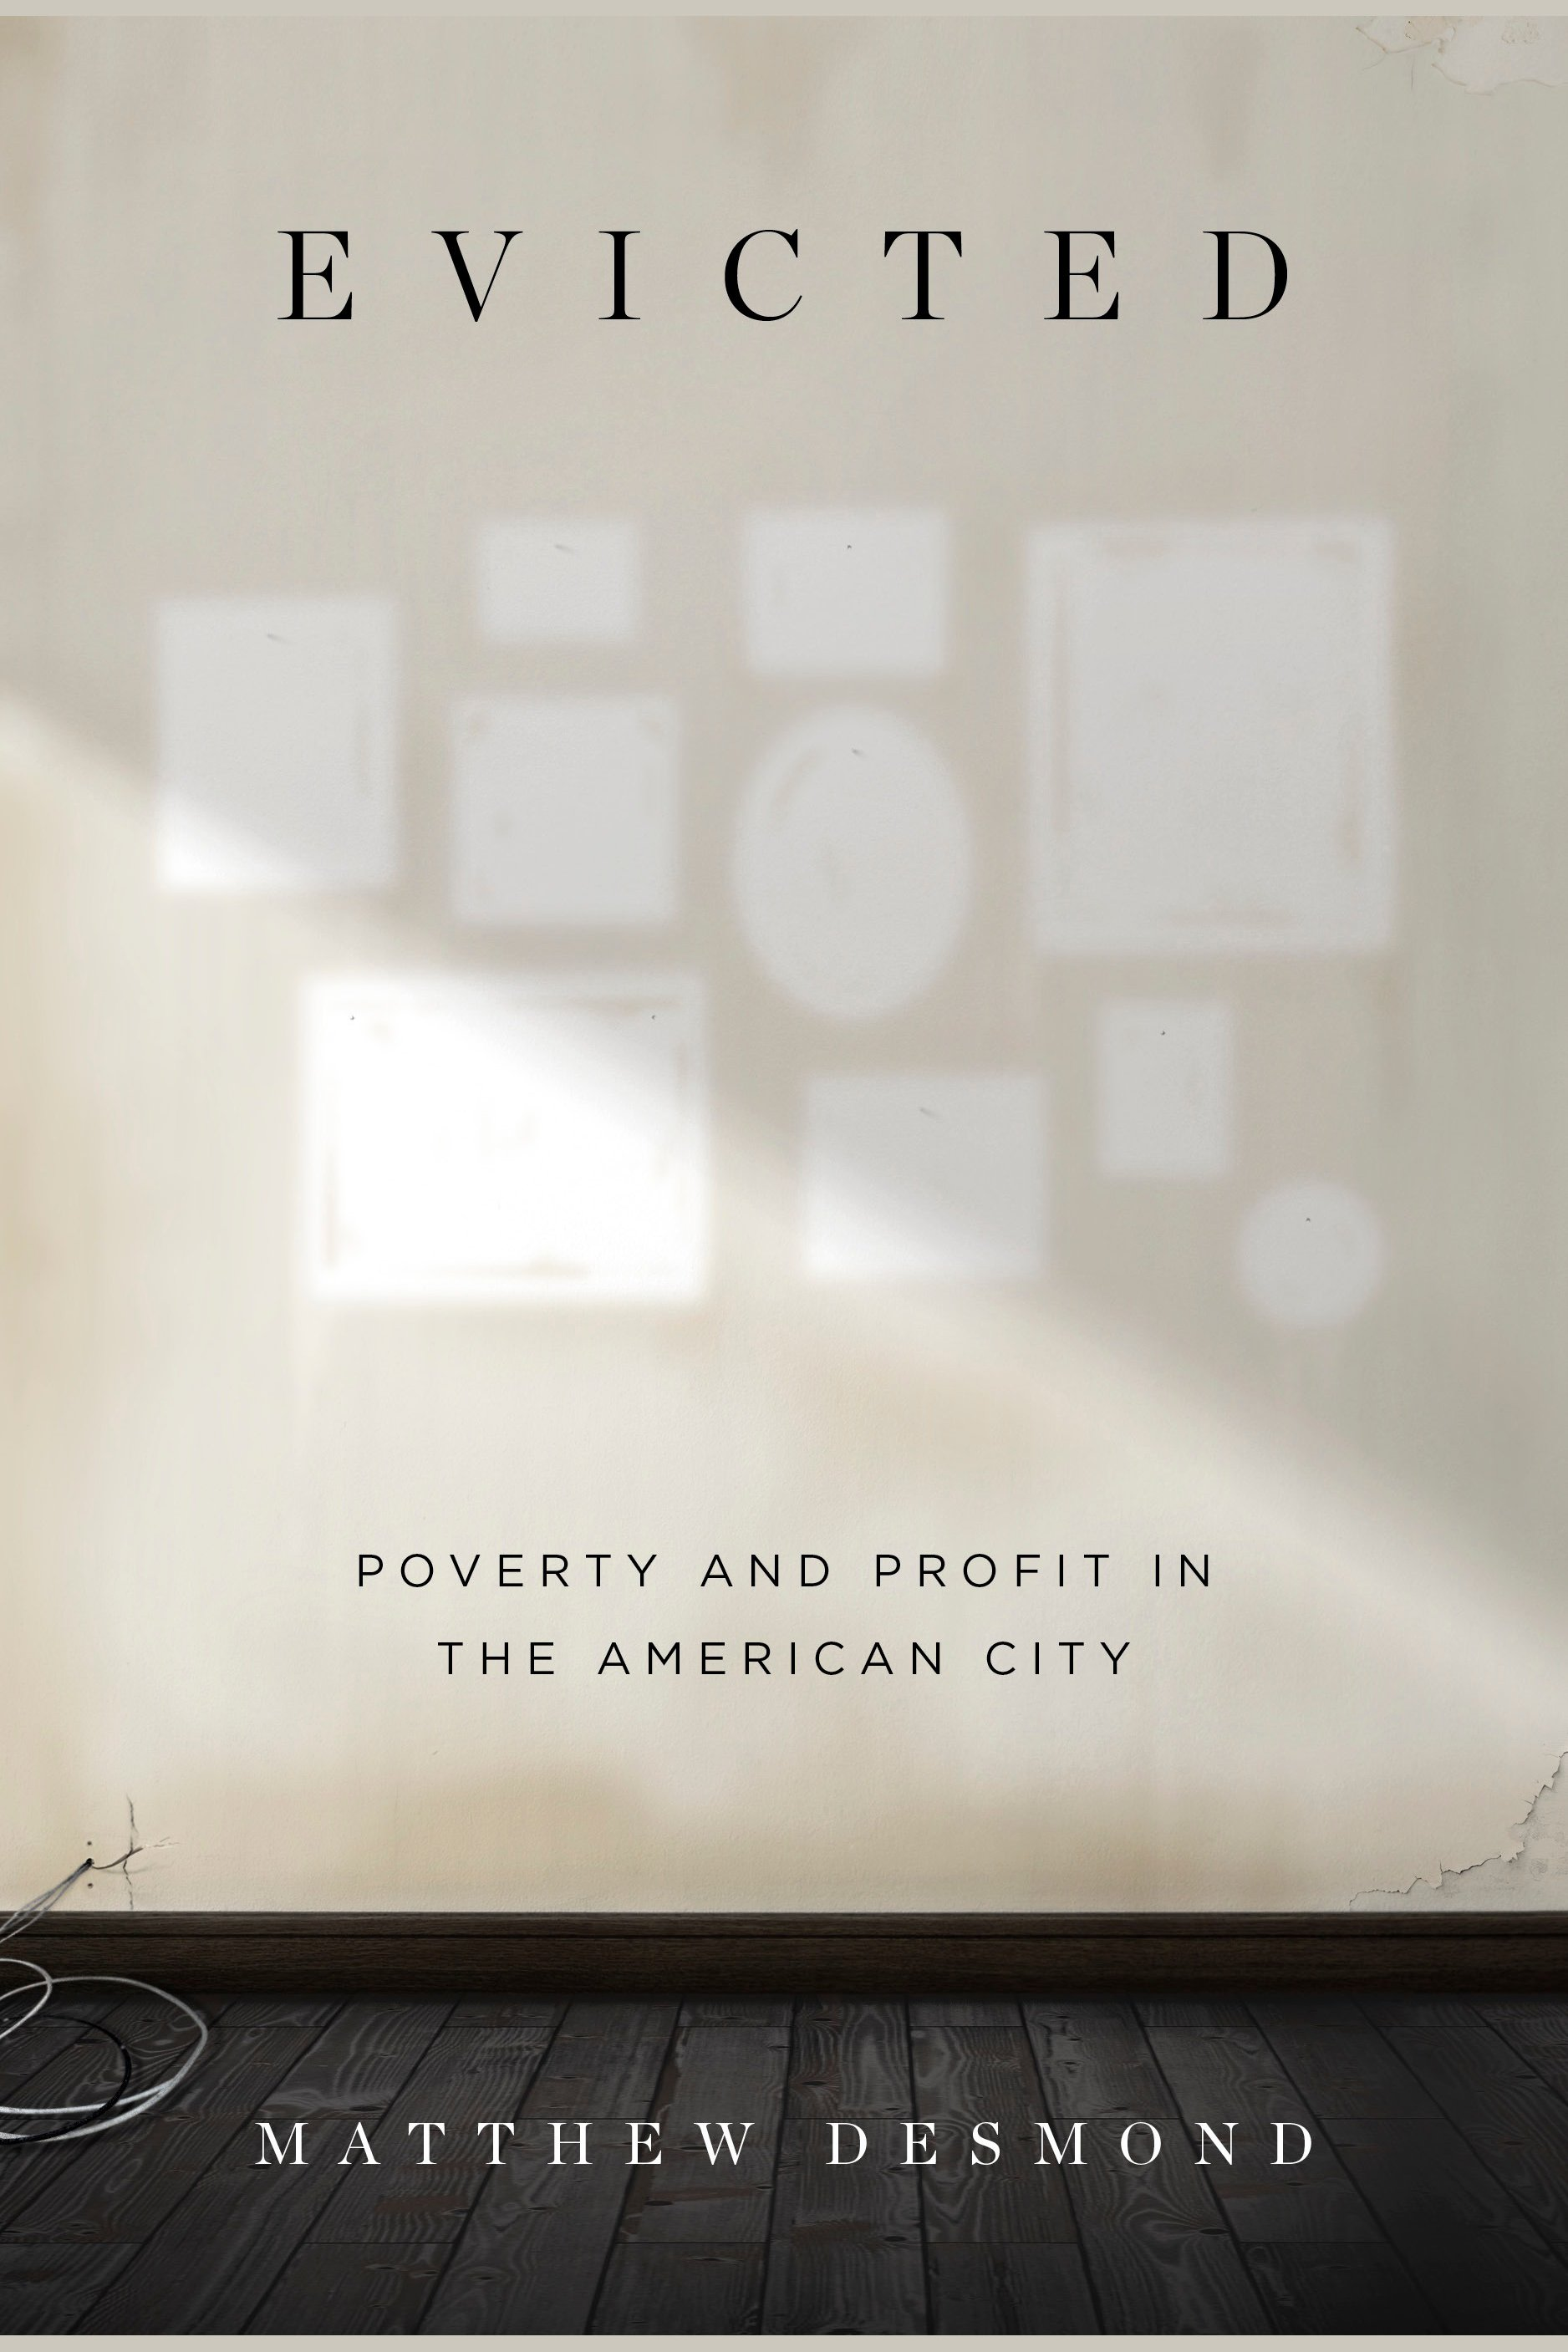 Evicted Poverty and Profit in the American City